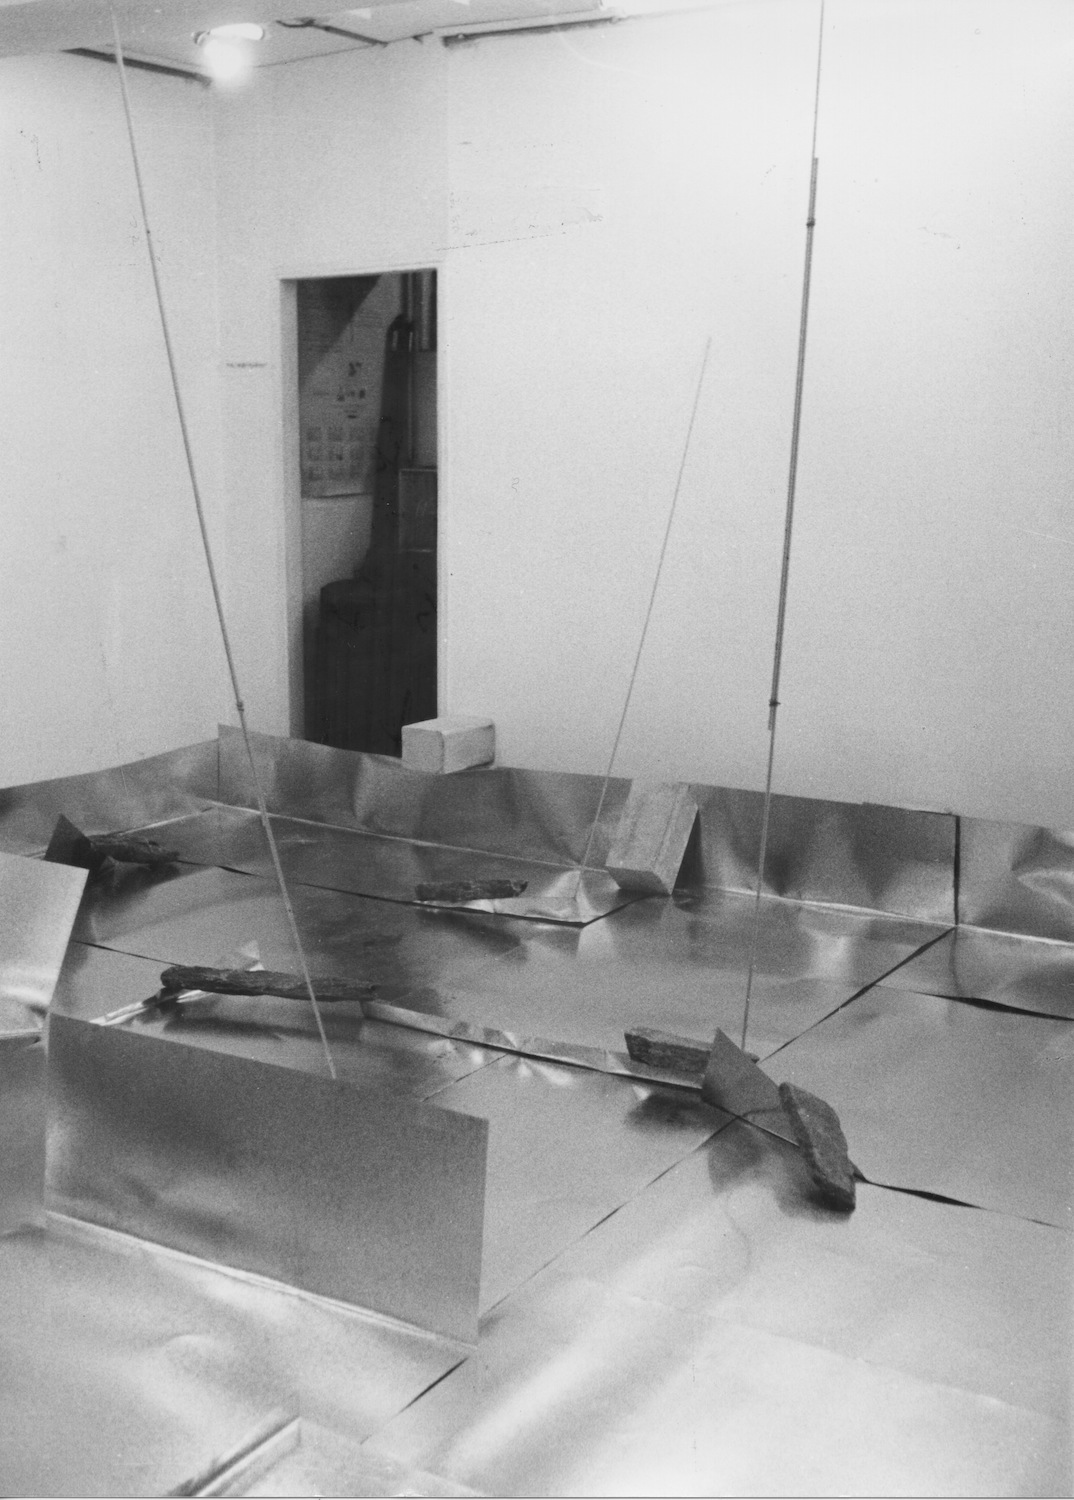 Separating Dependence , 1973 依存差 ( Izonsa ) Zinc plates, steel bars, concrete blocks, stones 620 x 580 x 300 cm Installation view at Satou Gallery, Tokyo, 1973 Photo: Shigeo Anzai